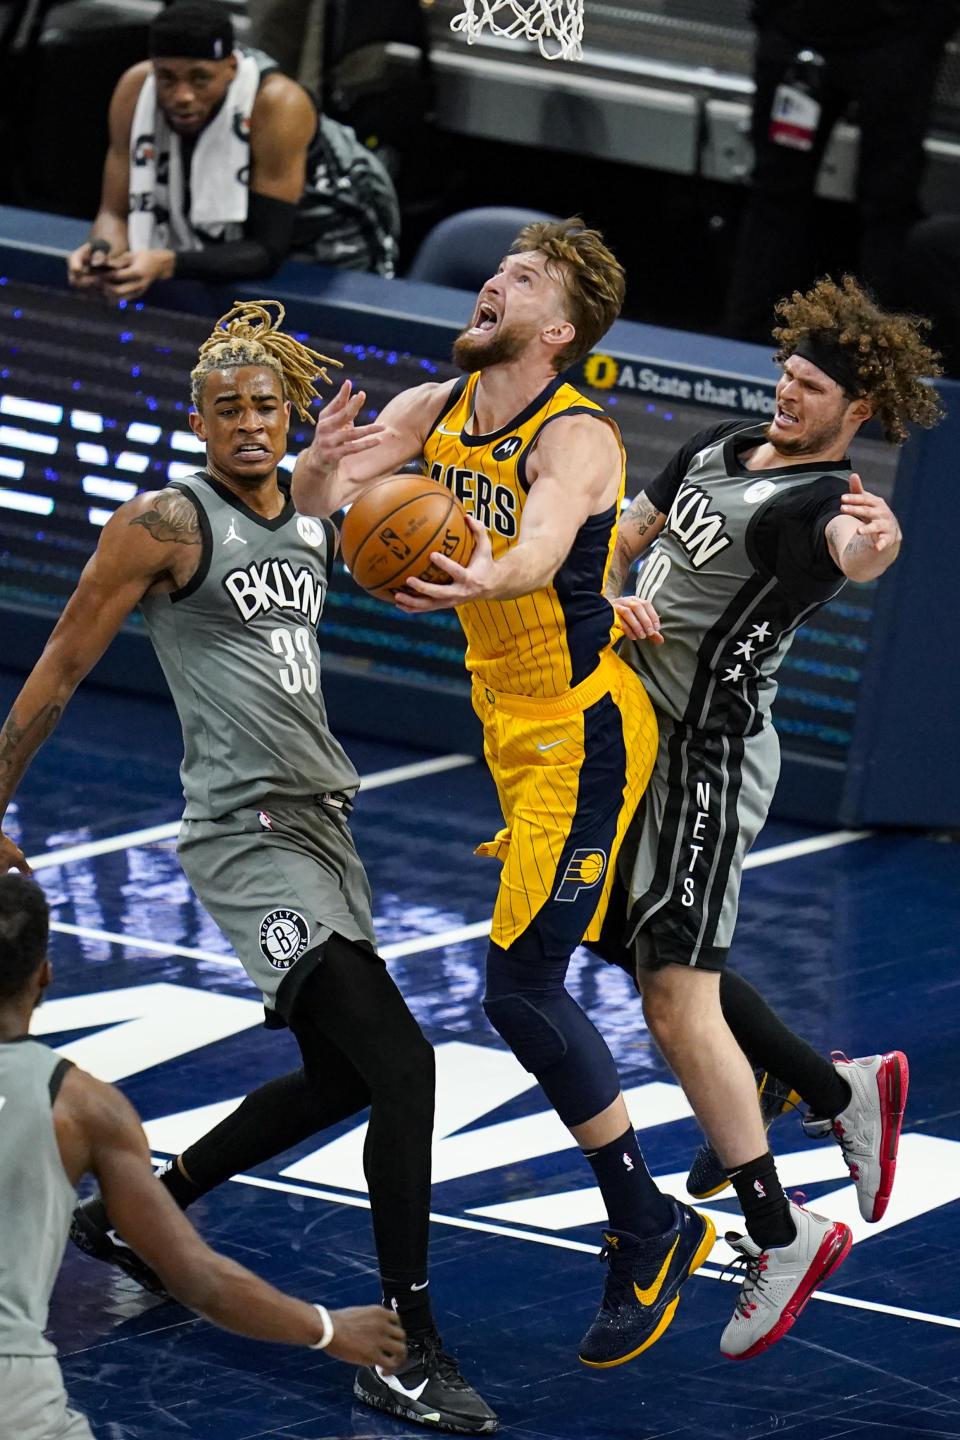 Indiana Pacers forward Domantas Sabonis (11) shoots between Brooklyn Nets forward Nicolas Claxton (33) and guard Tyler Johnson (10) during the second half of an NBA basketball game in Indianapolis, Wednesday, March 17, 2021. (AP Photo/Michael Conroy)